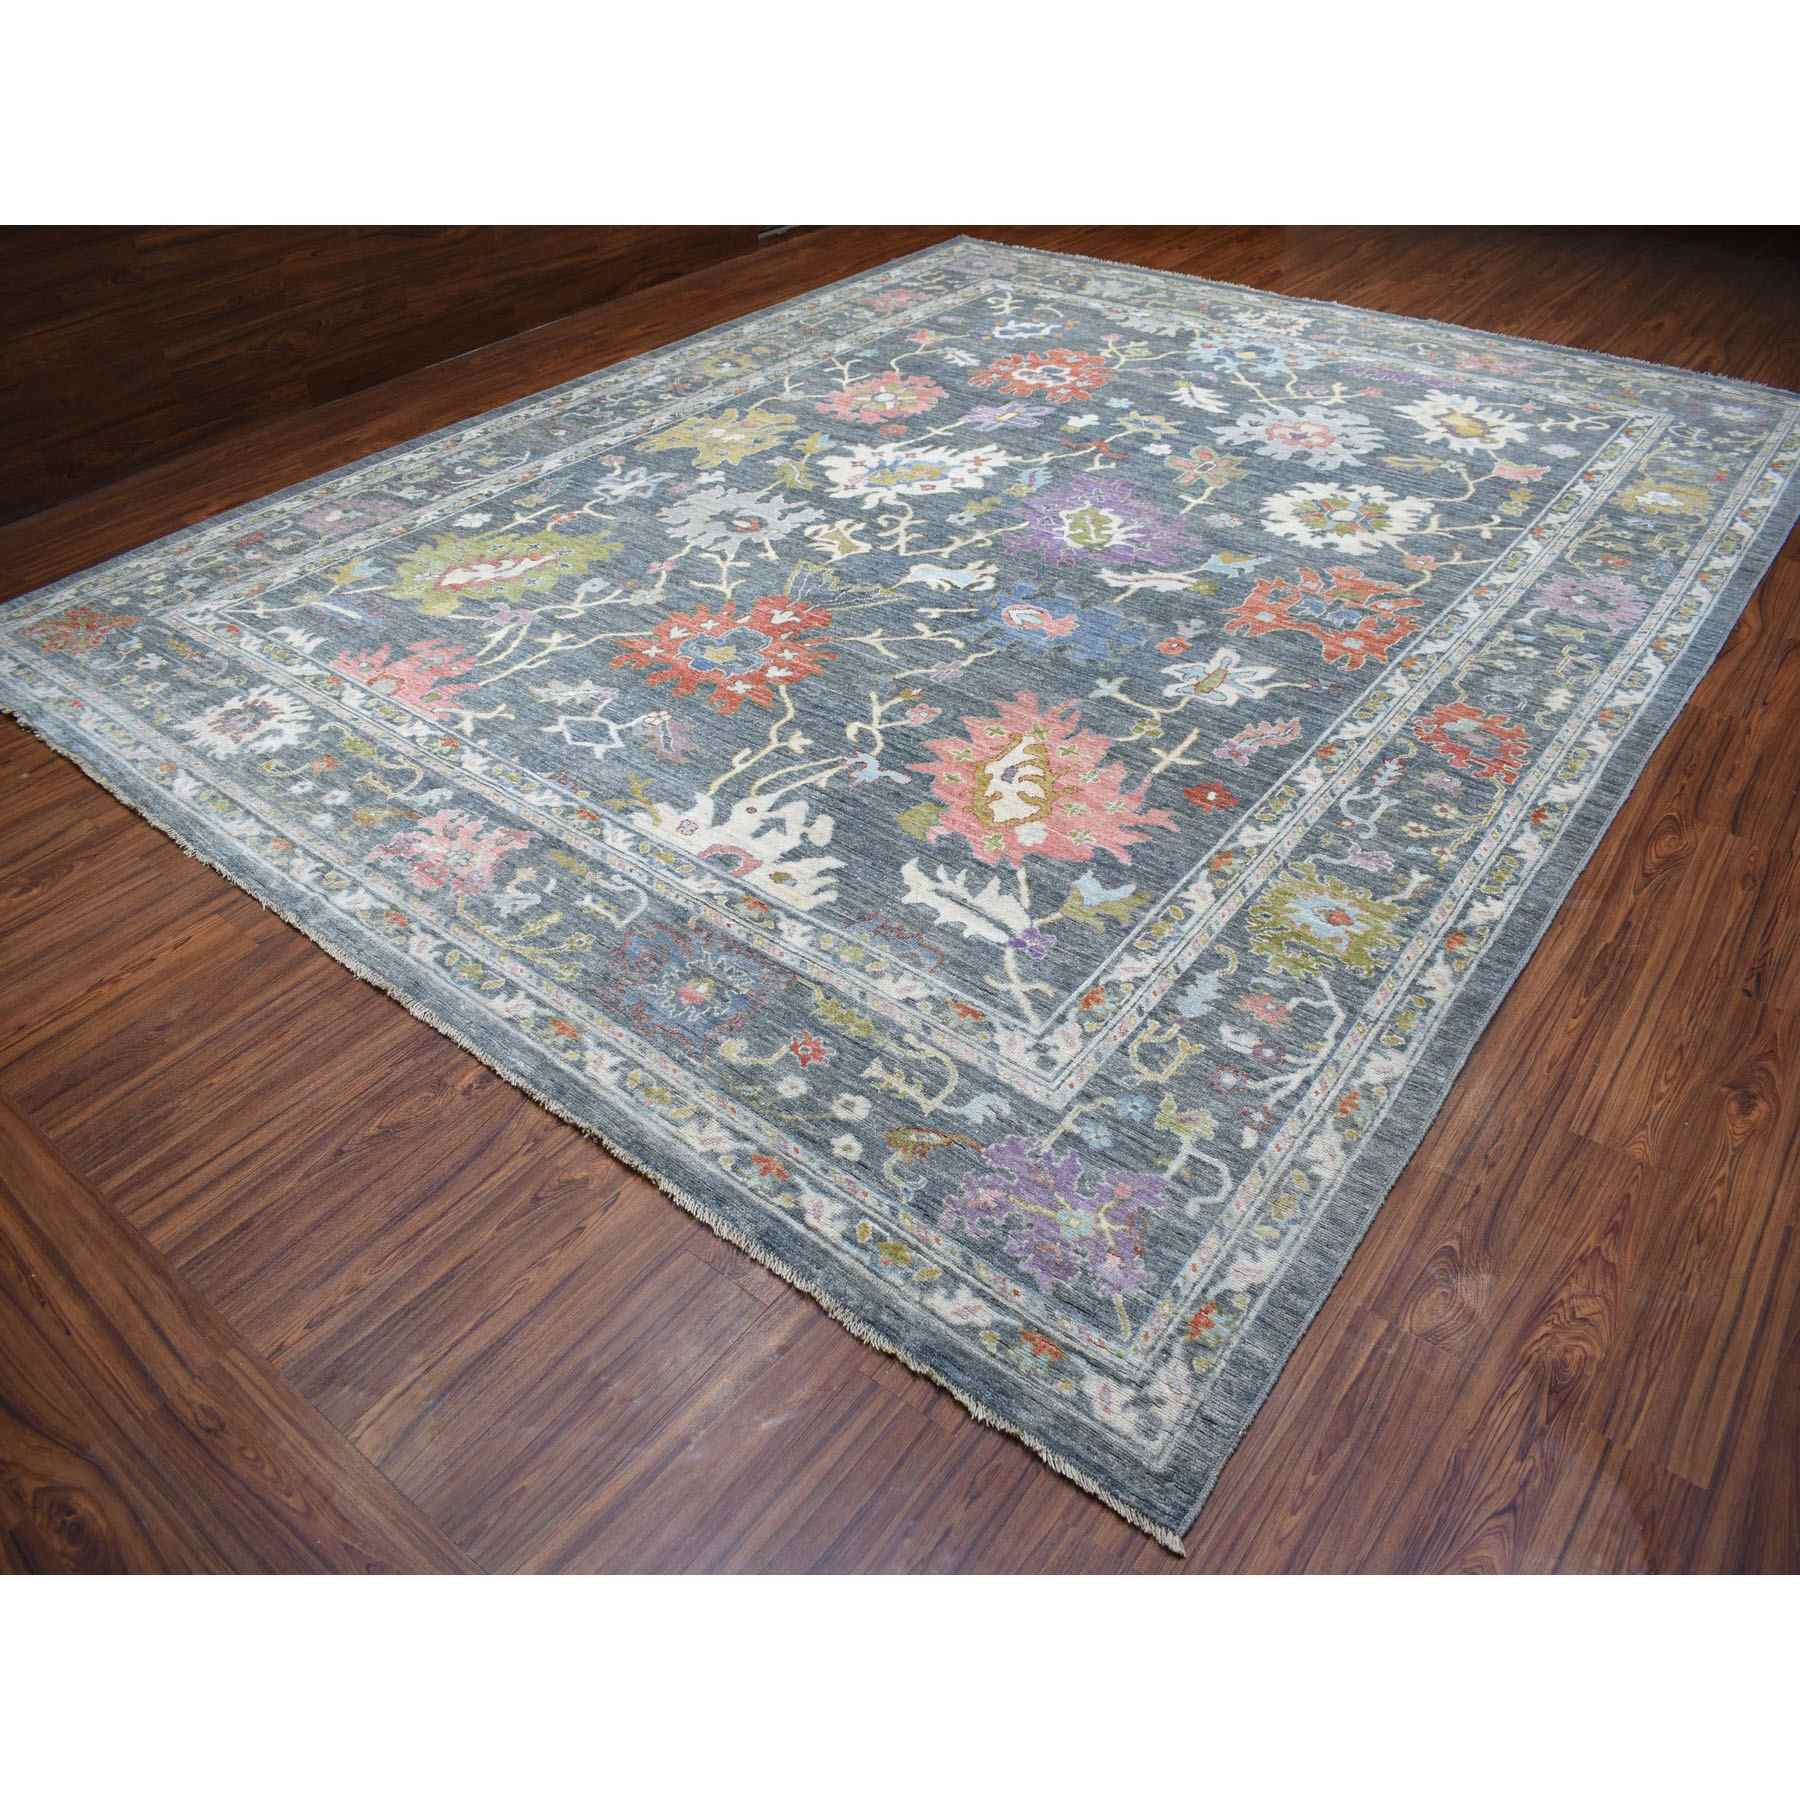 Oushak-And-Peshawar-Hand-Knotted-Rug-279015